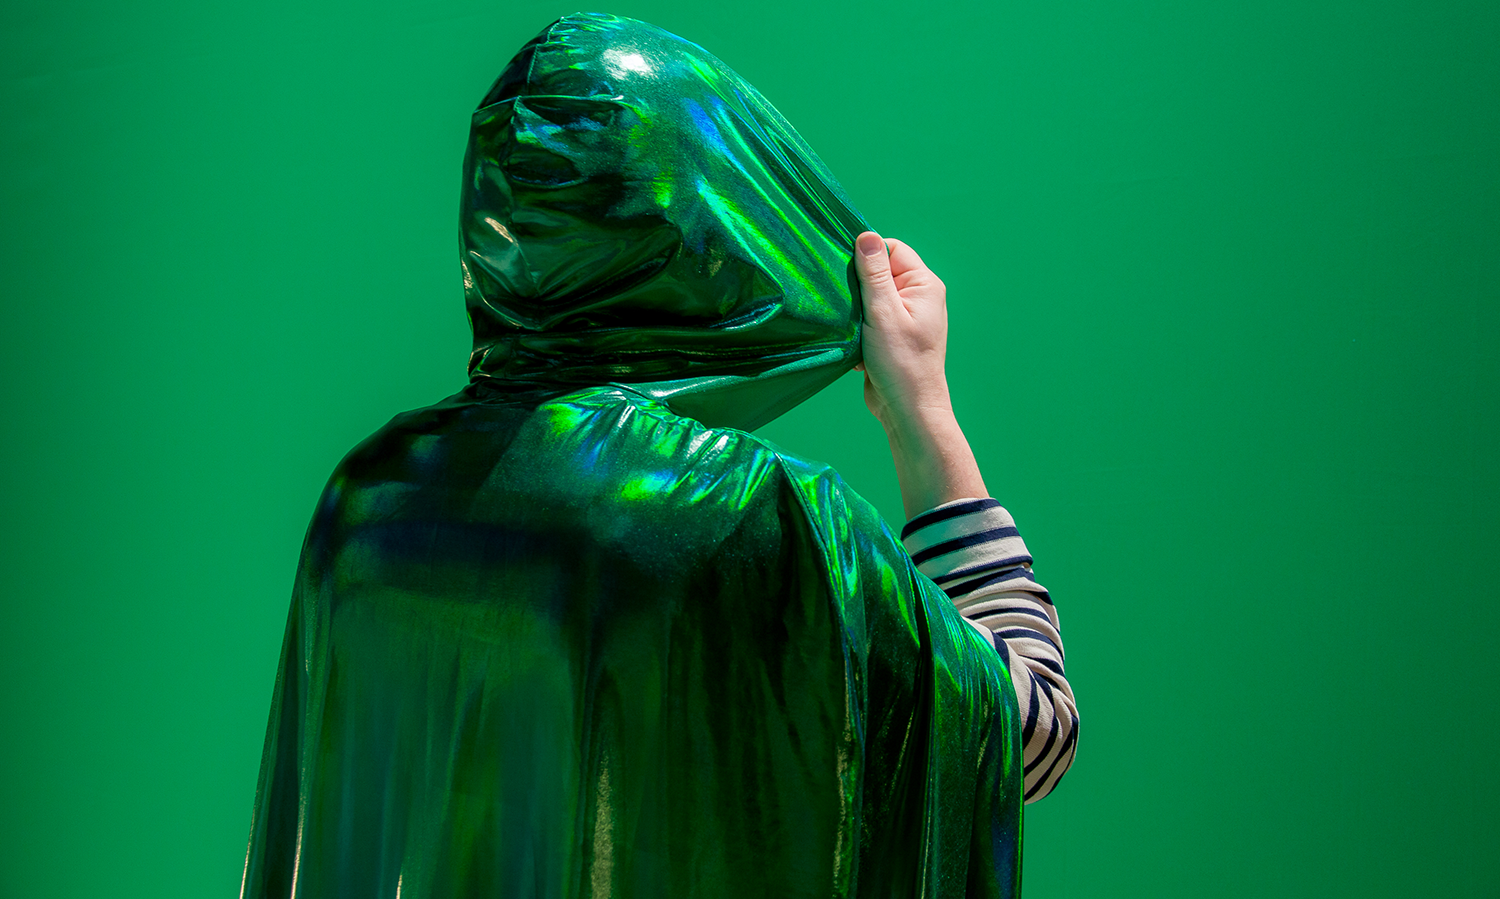 a hooded figure in green against a green background